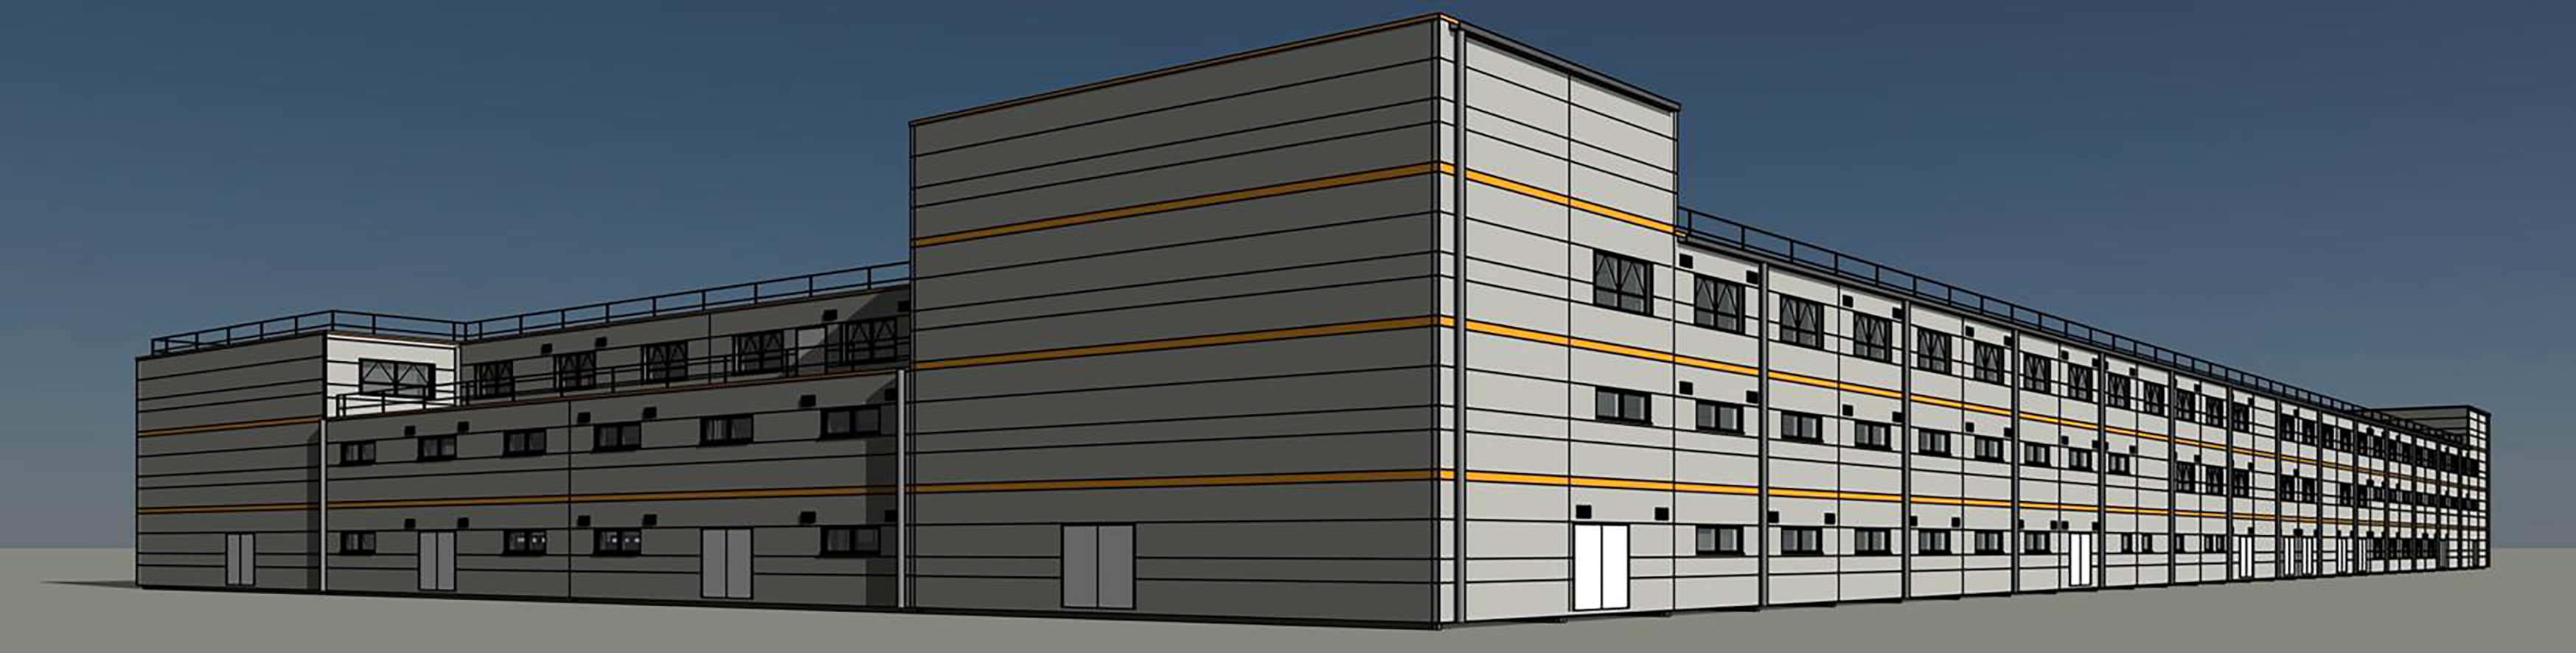 Yorkshire firm bags 1 000 module hinkley site office job for Site office design